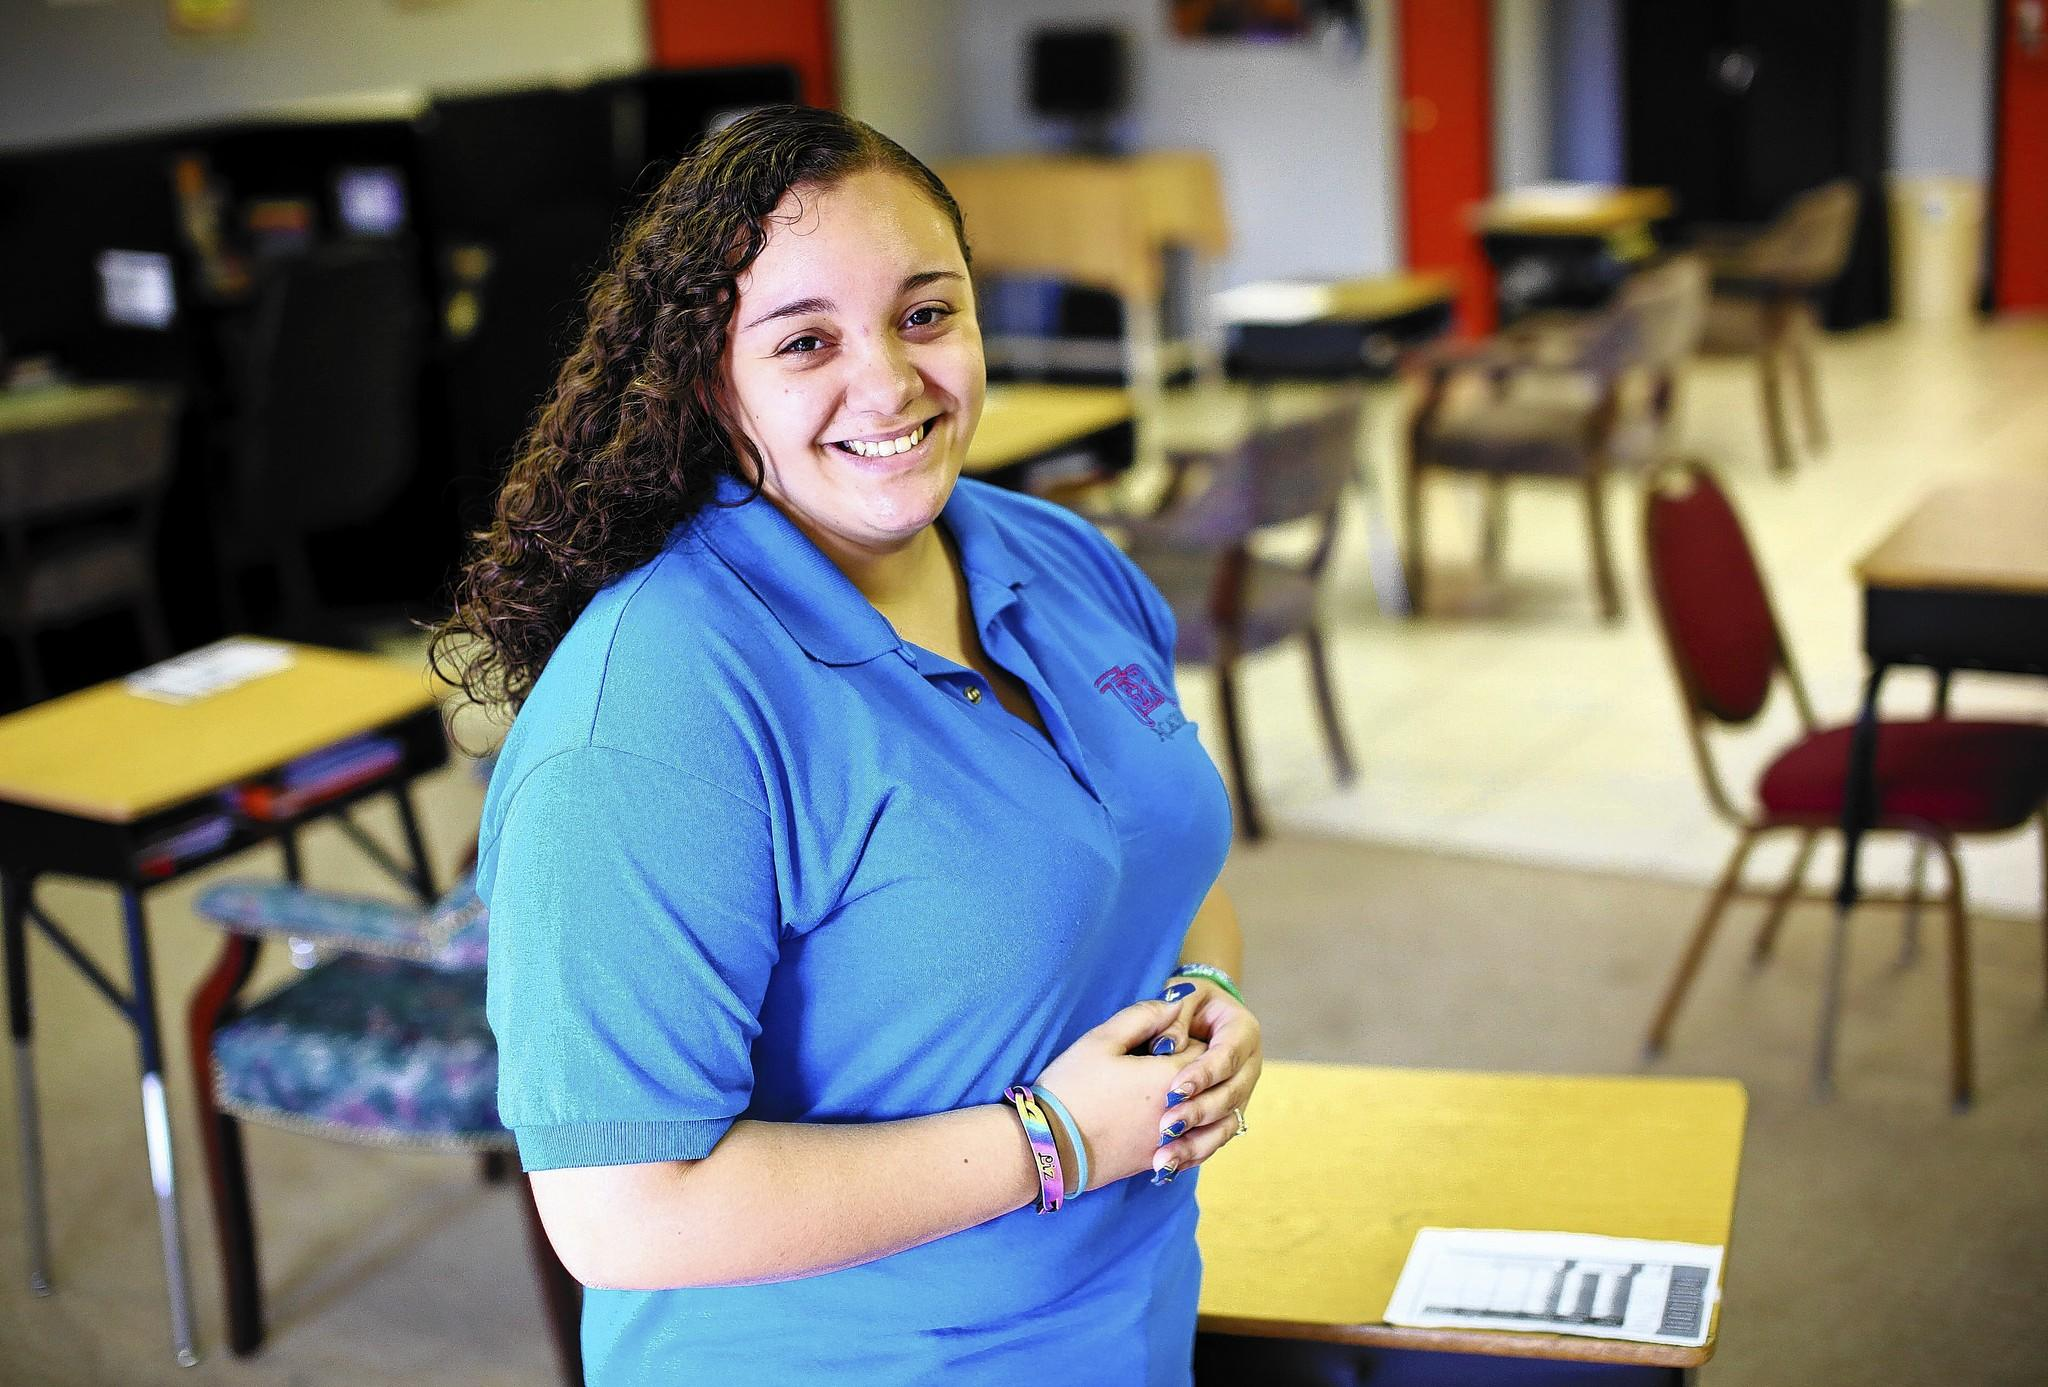 Lissette Gandulla, 19, is a tutor at TDR Learning Academy. She tutors everyday on a wide range of subjects from kindergarten through 12th grade.